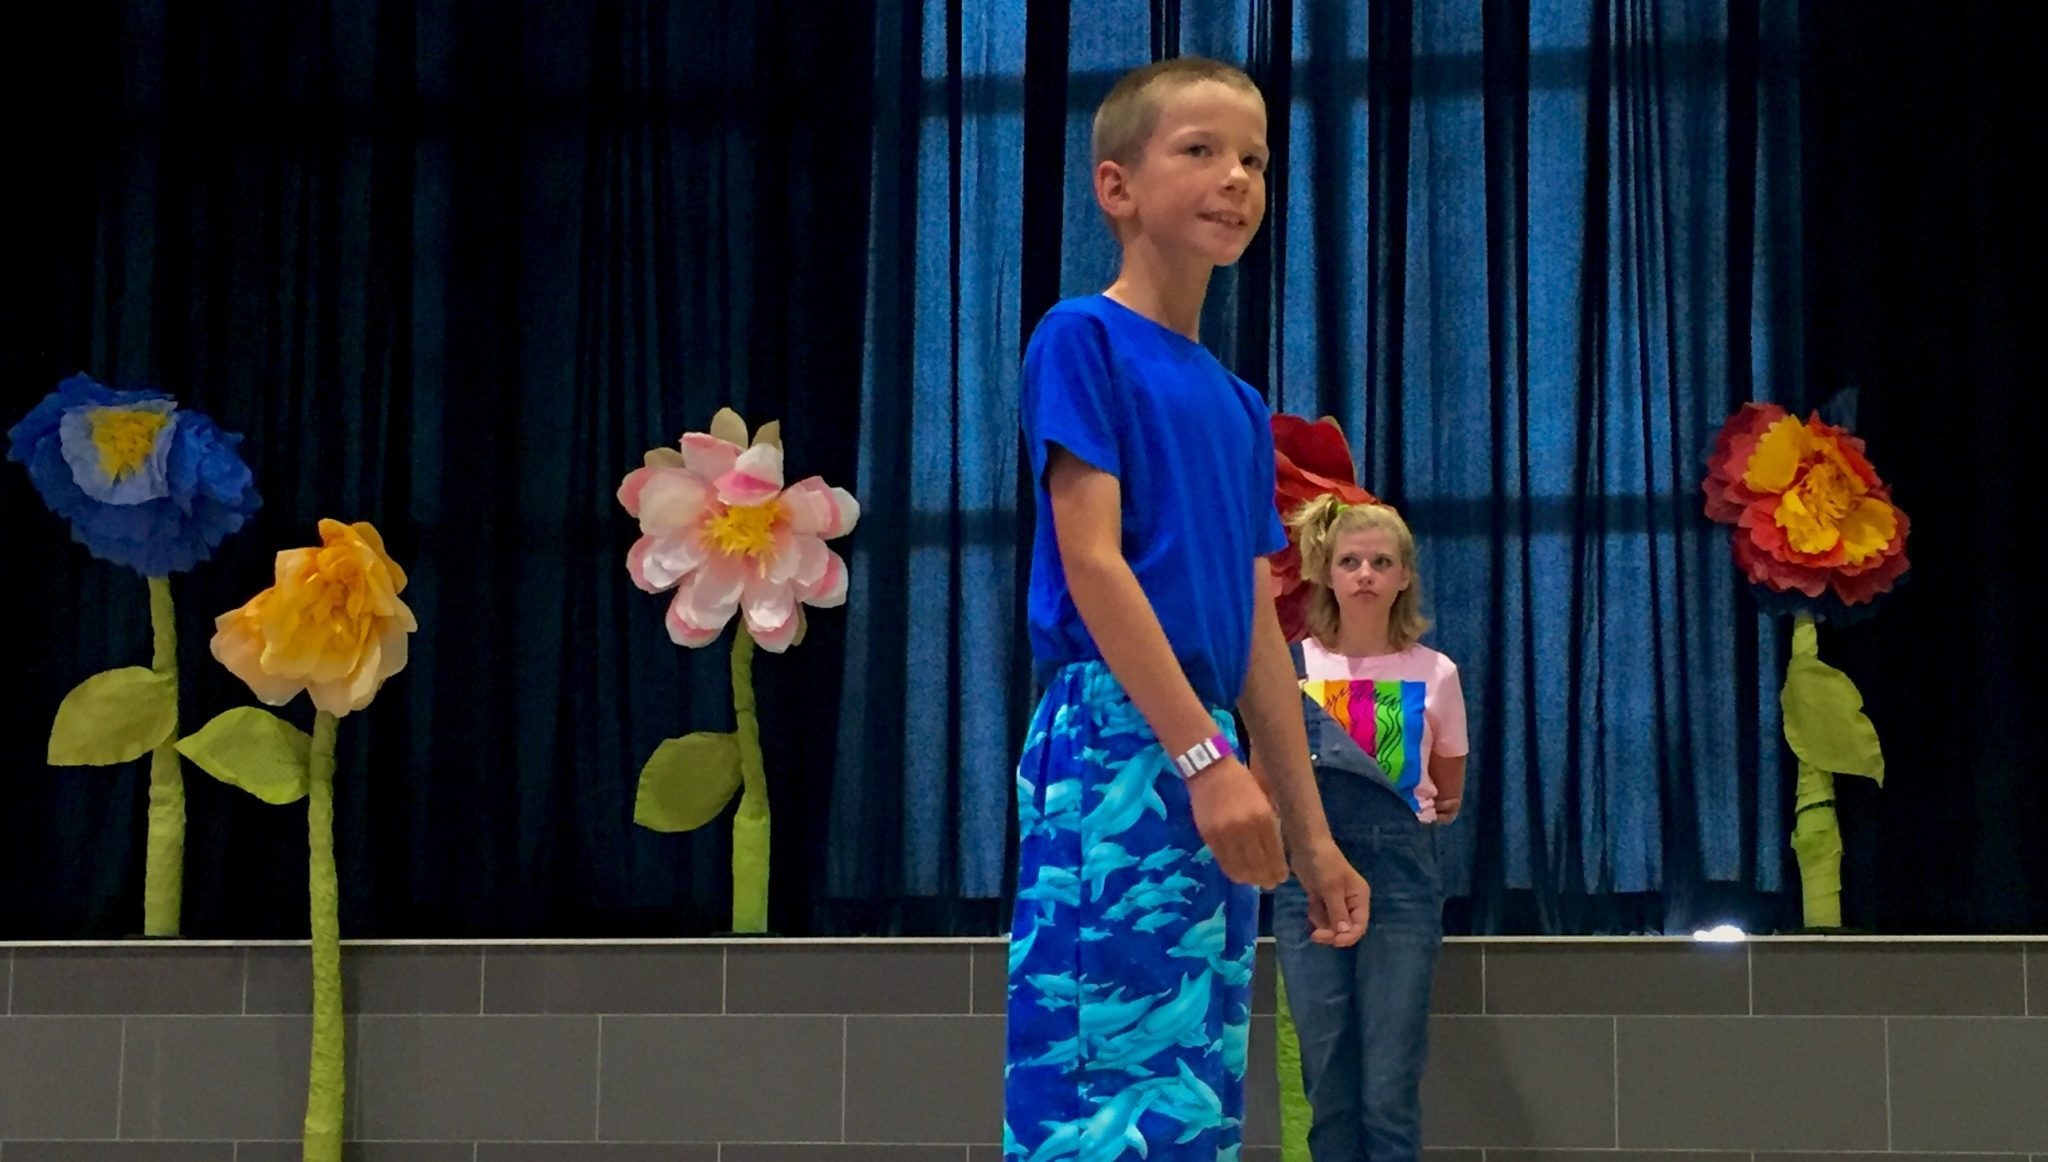 First-year 4-H member Ben Hudson sports his new pants around the Style show stage Wednesday afternoon.